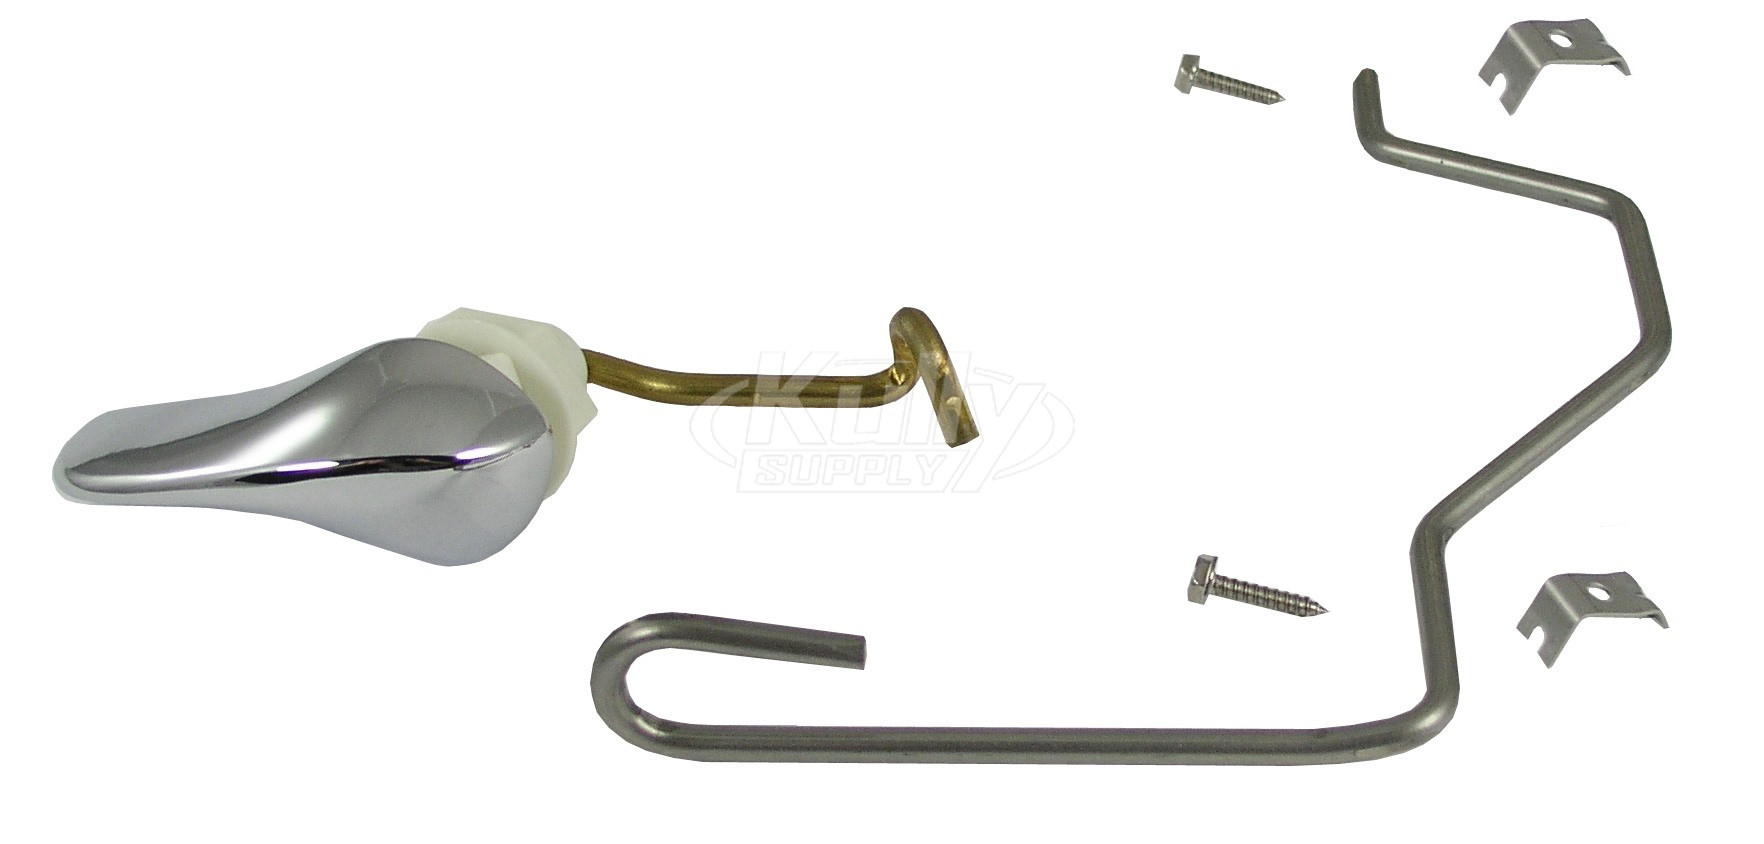 Sloan Flushmate Ap300122 R3 Handle And Rod Kit